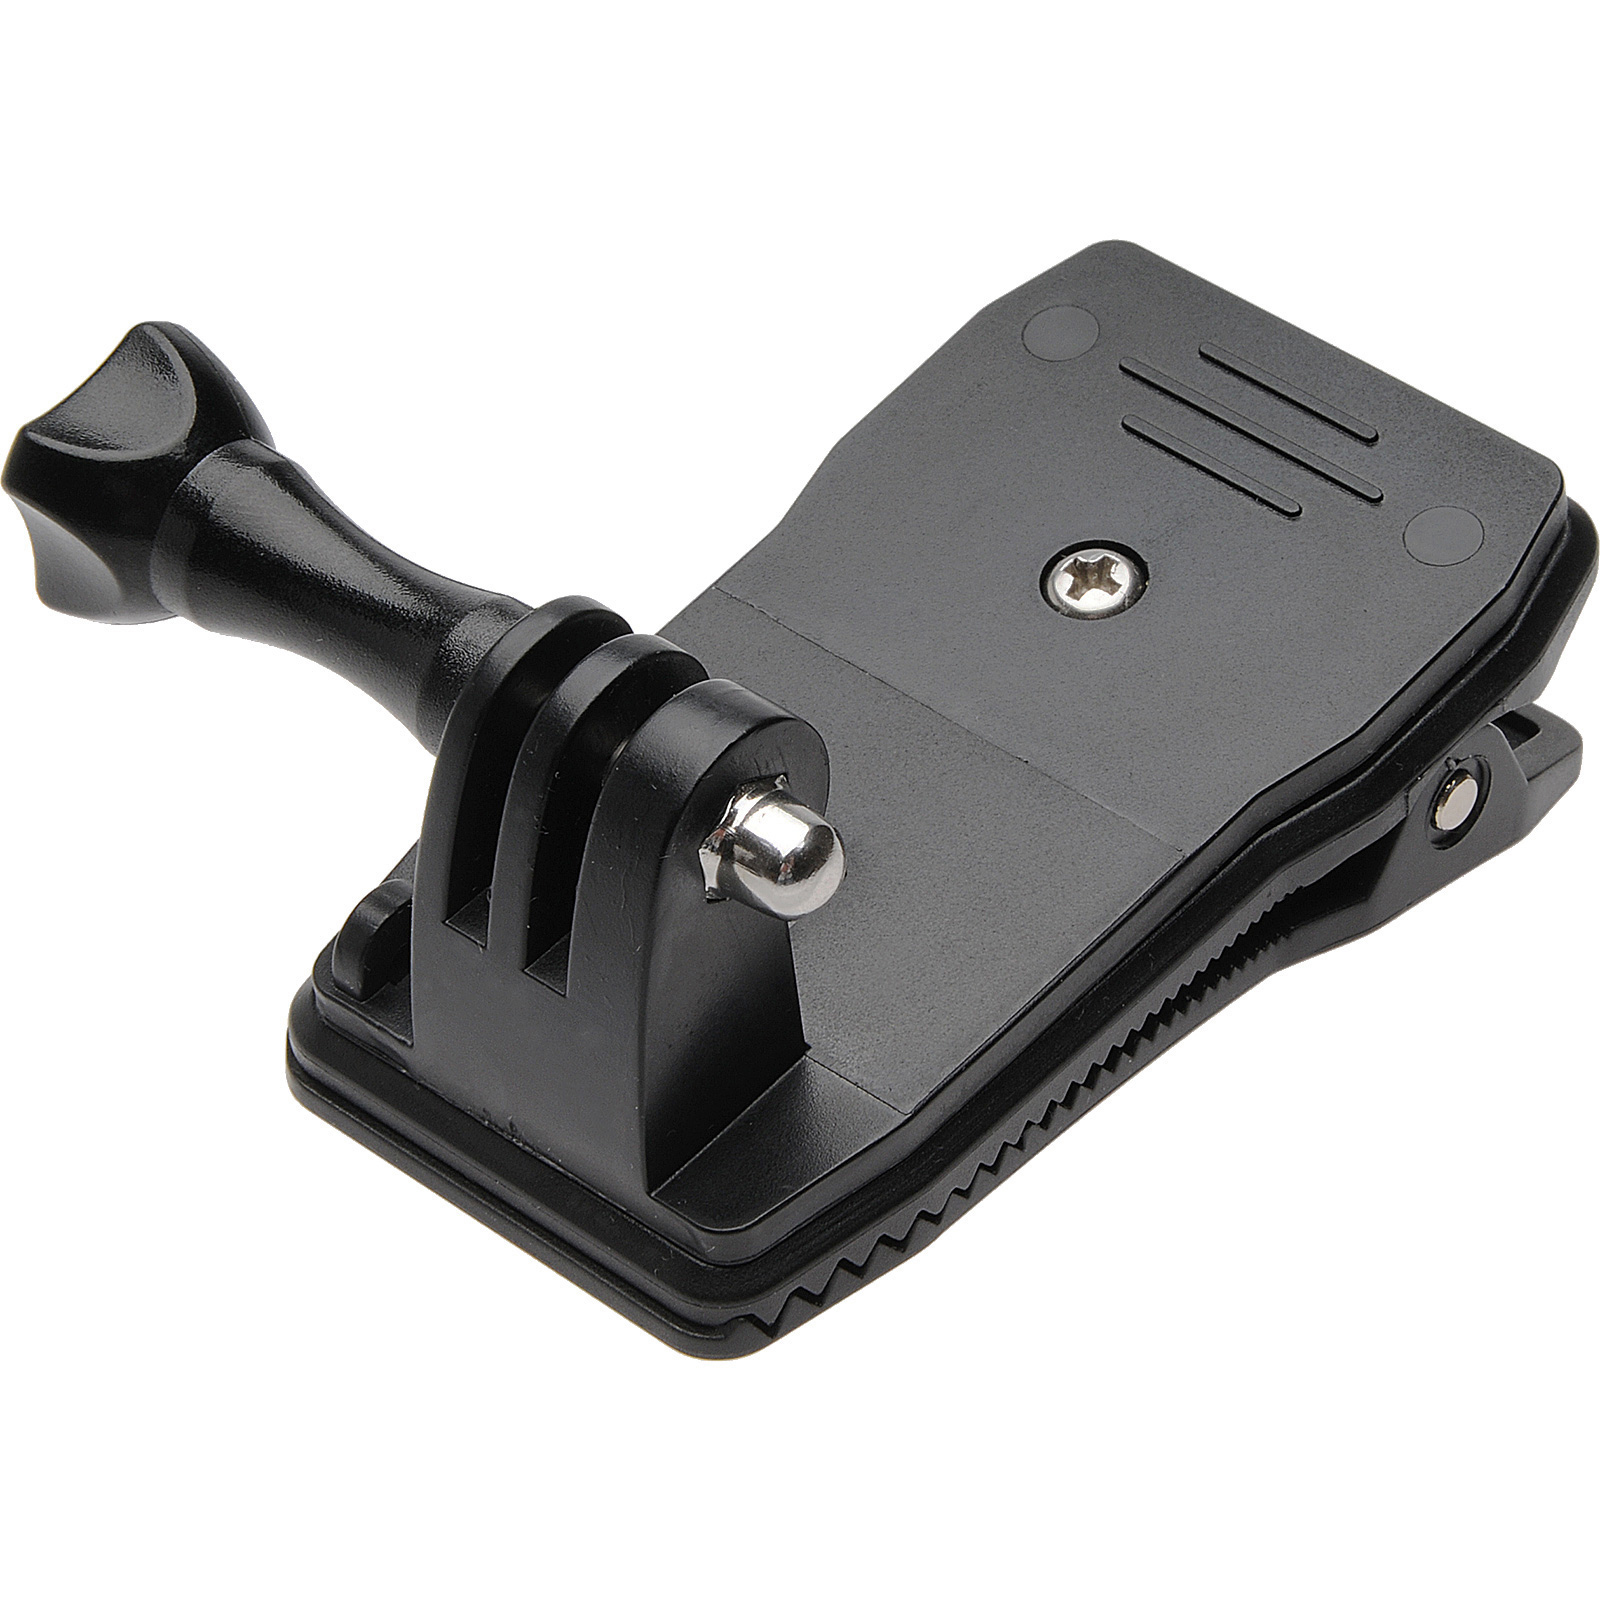 PRO-mounts PMGP138 360 Degree Clamp for GoPro HERO